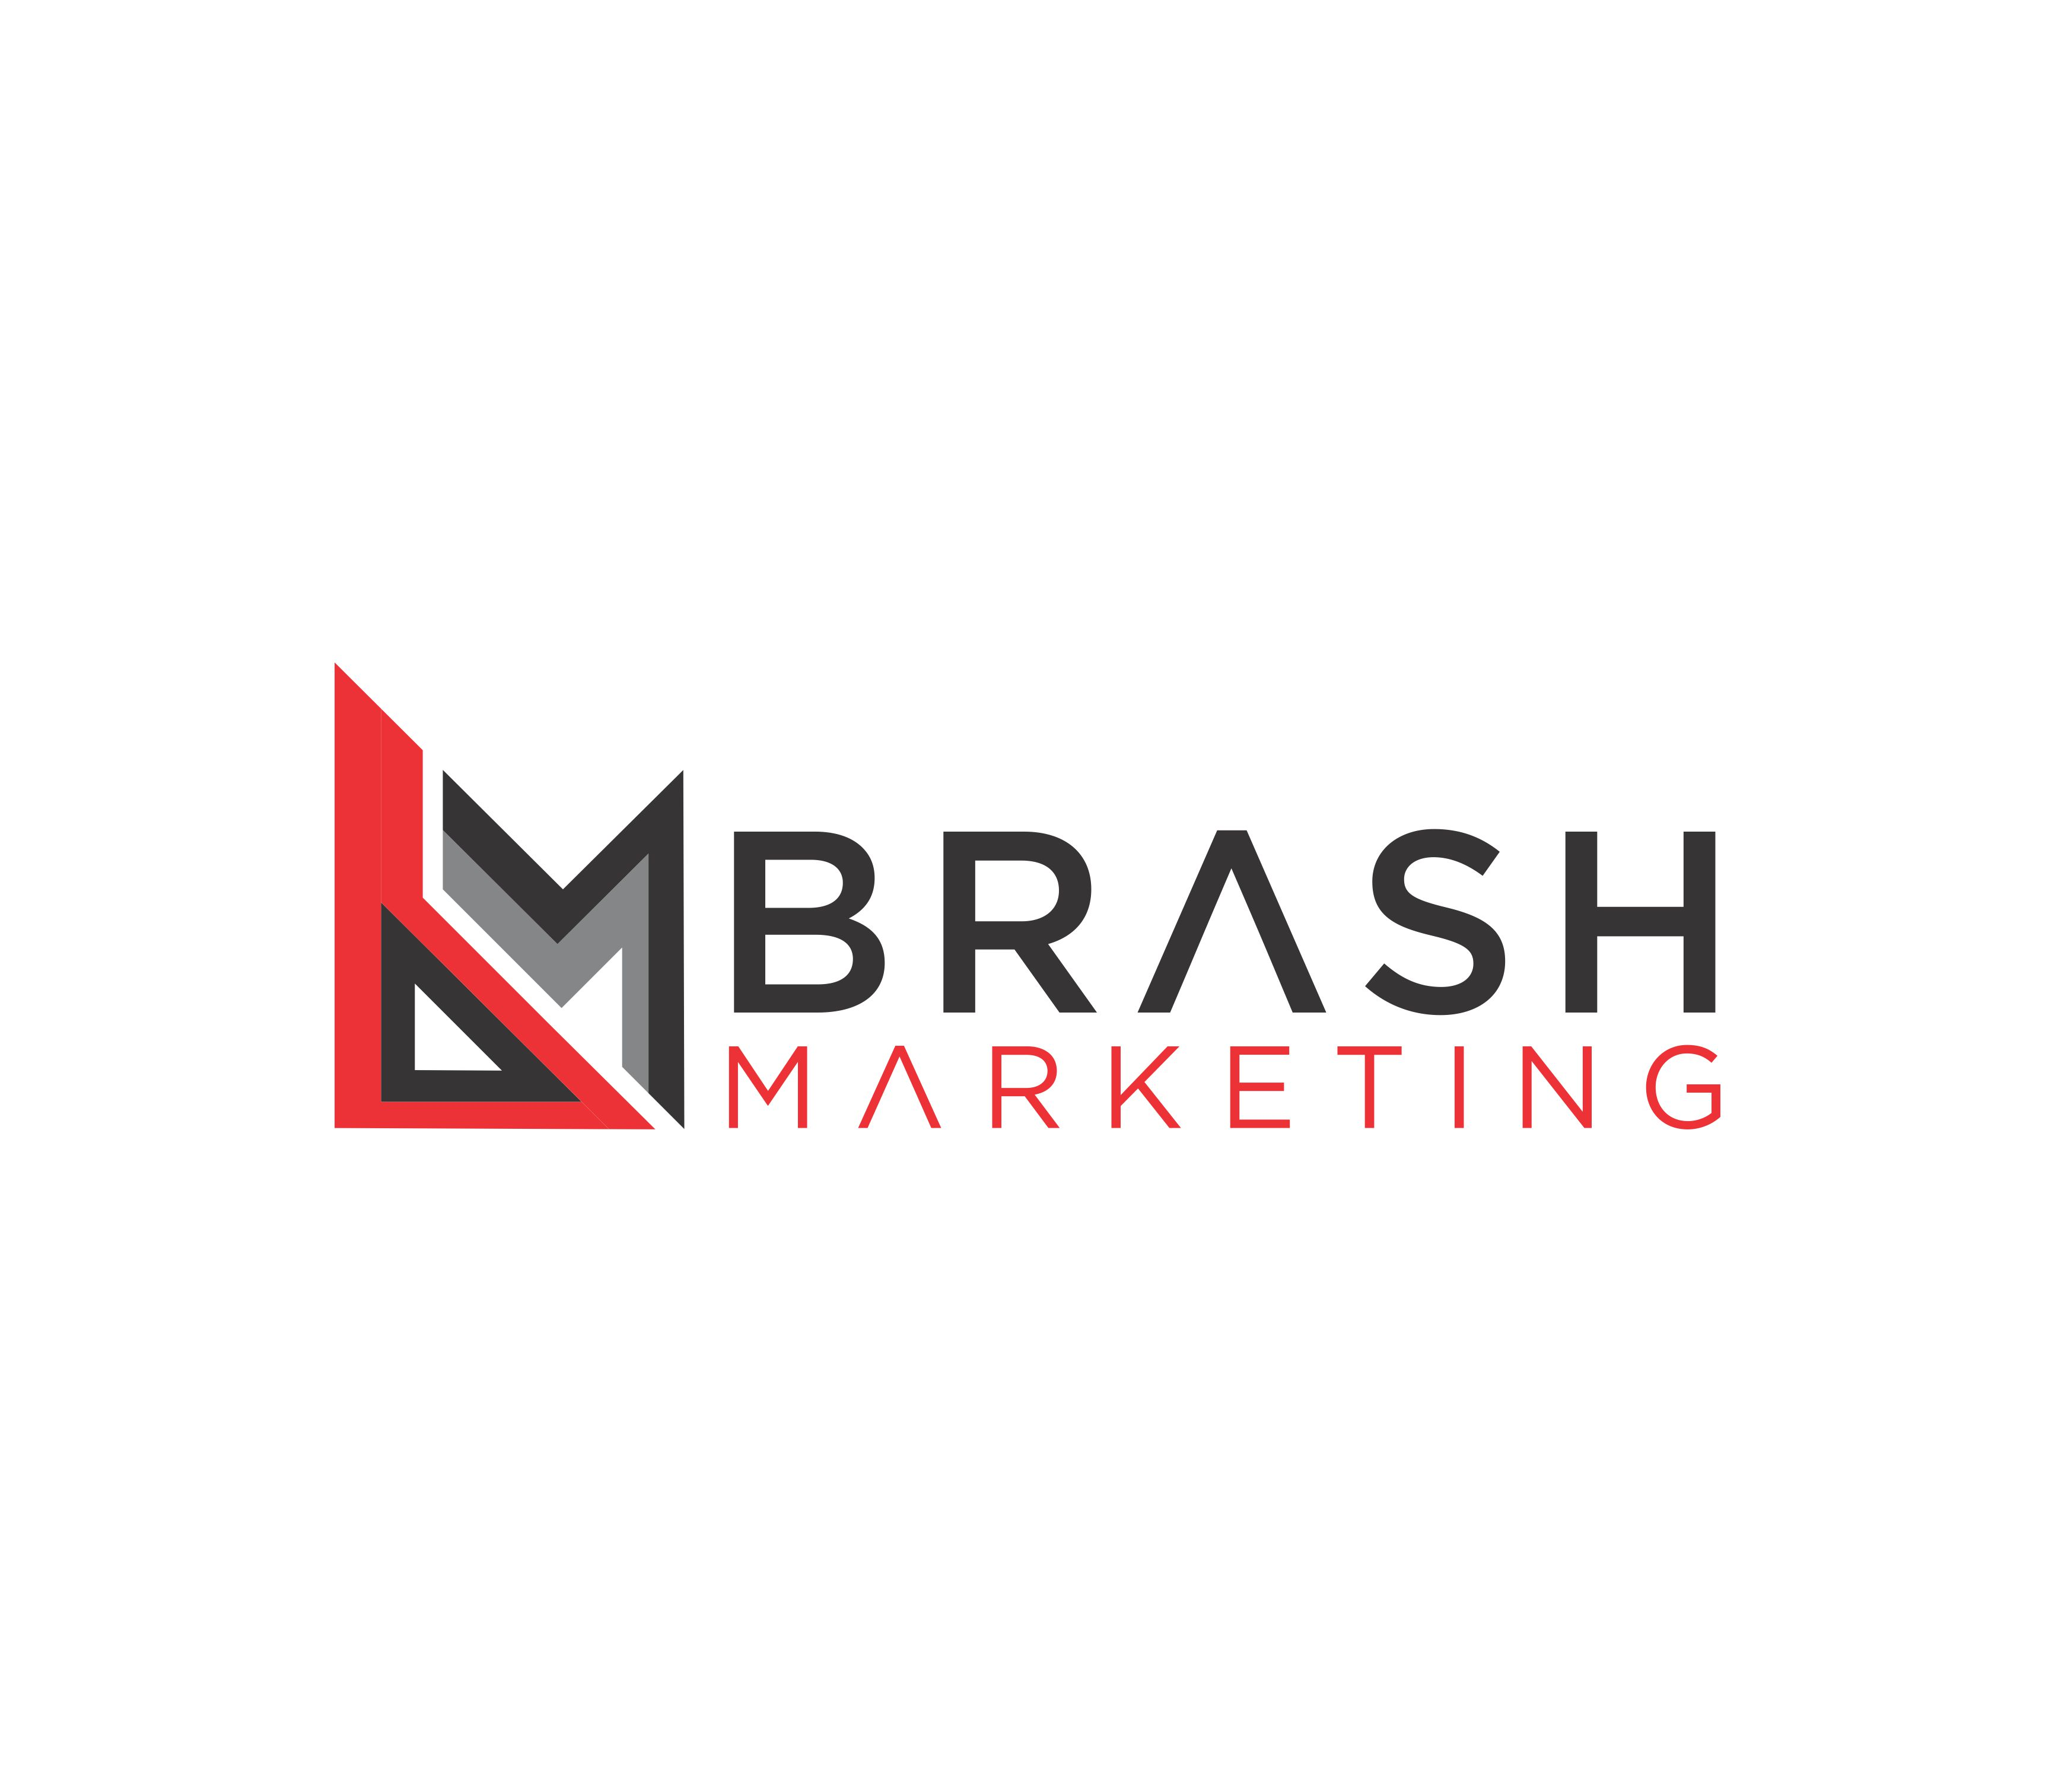 Brash Marketing Leads Marketing Industry With Tactful Advertising Skills